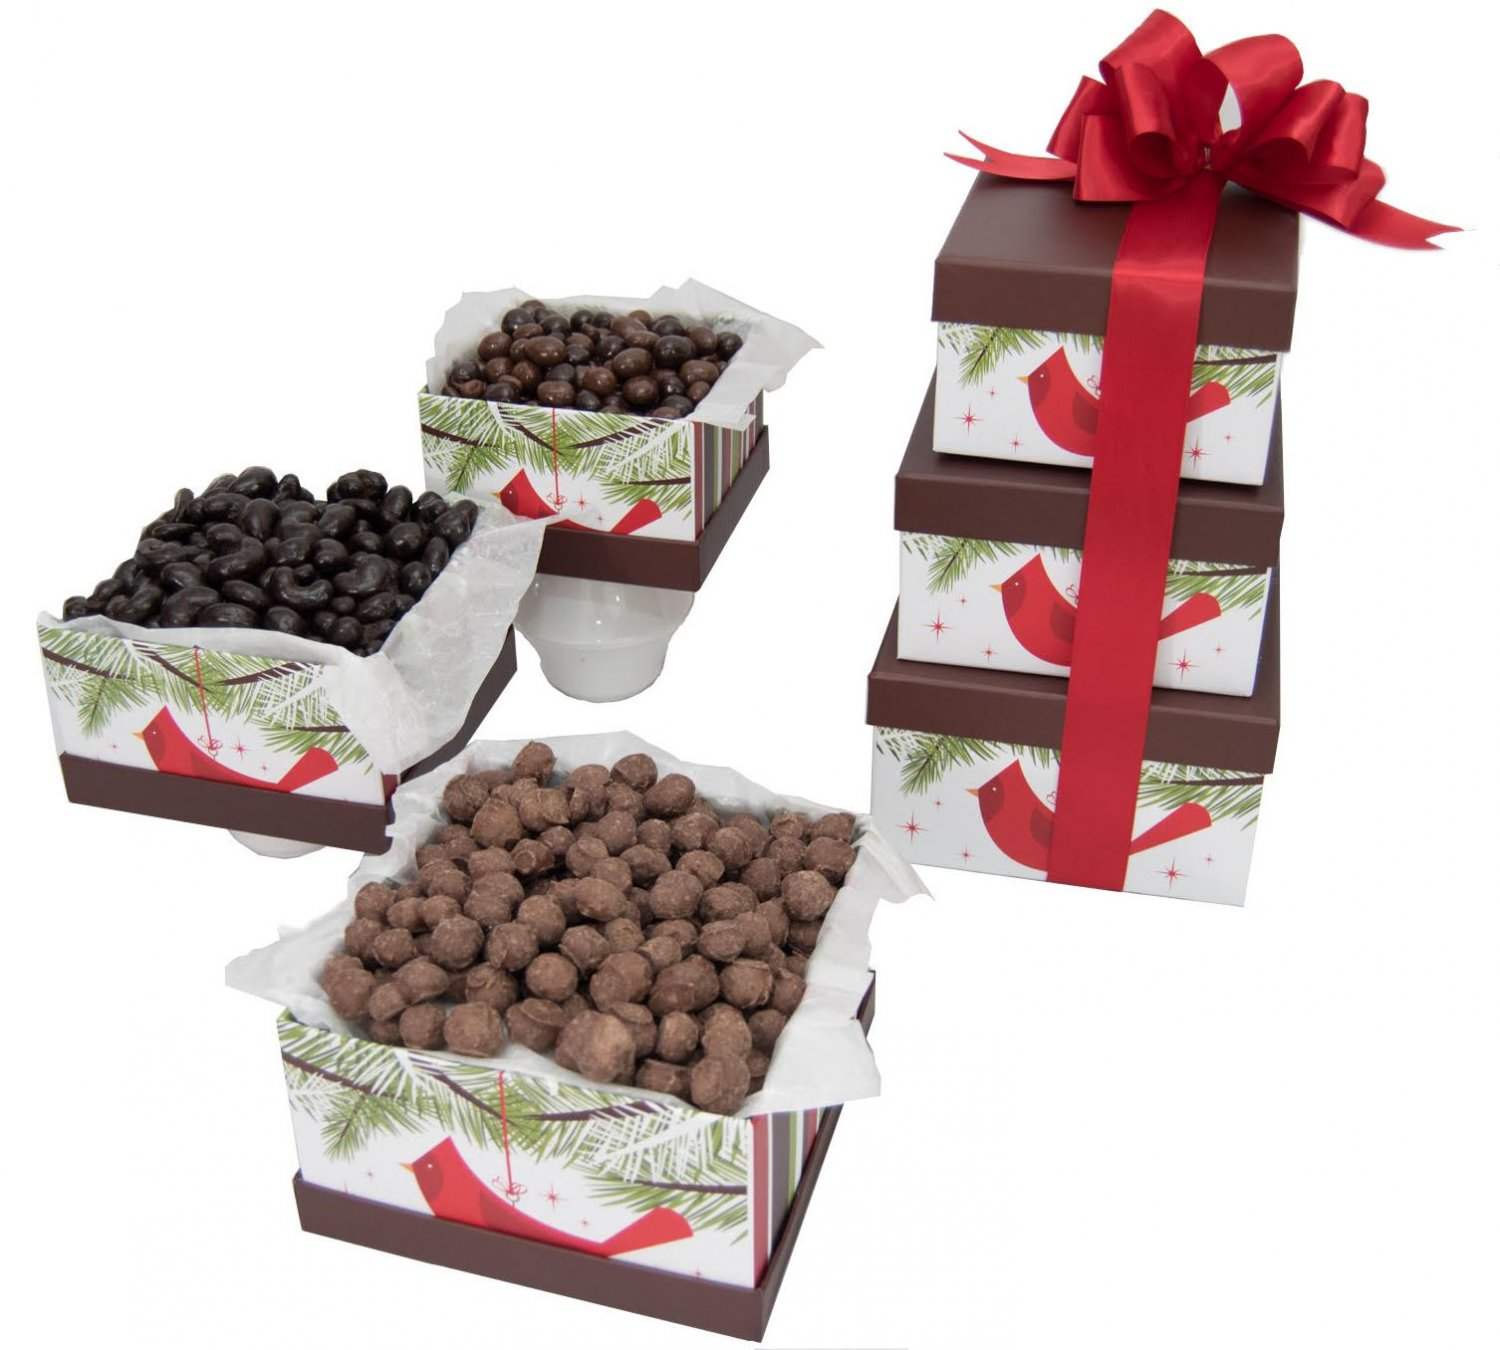 Christmas Cardinal Chocolate Nut Gift Tower